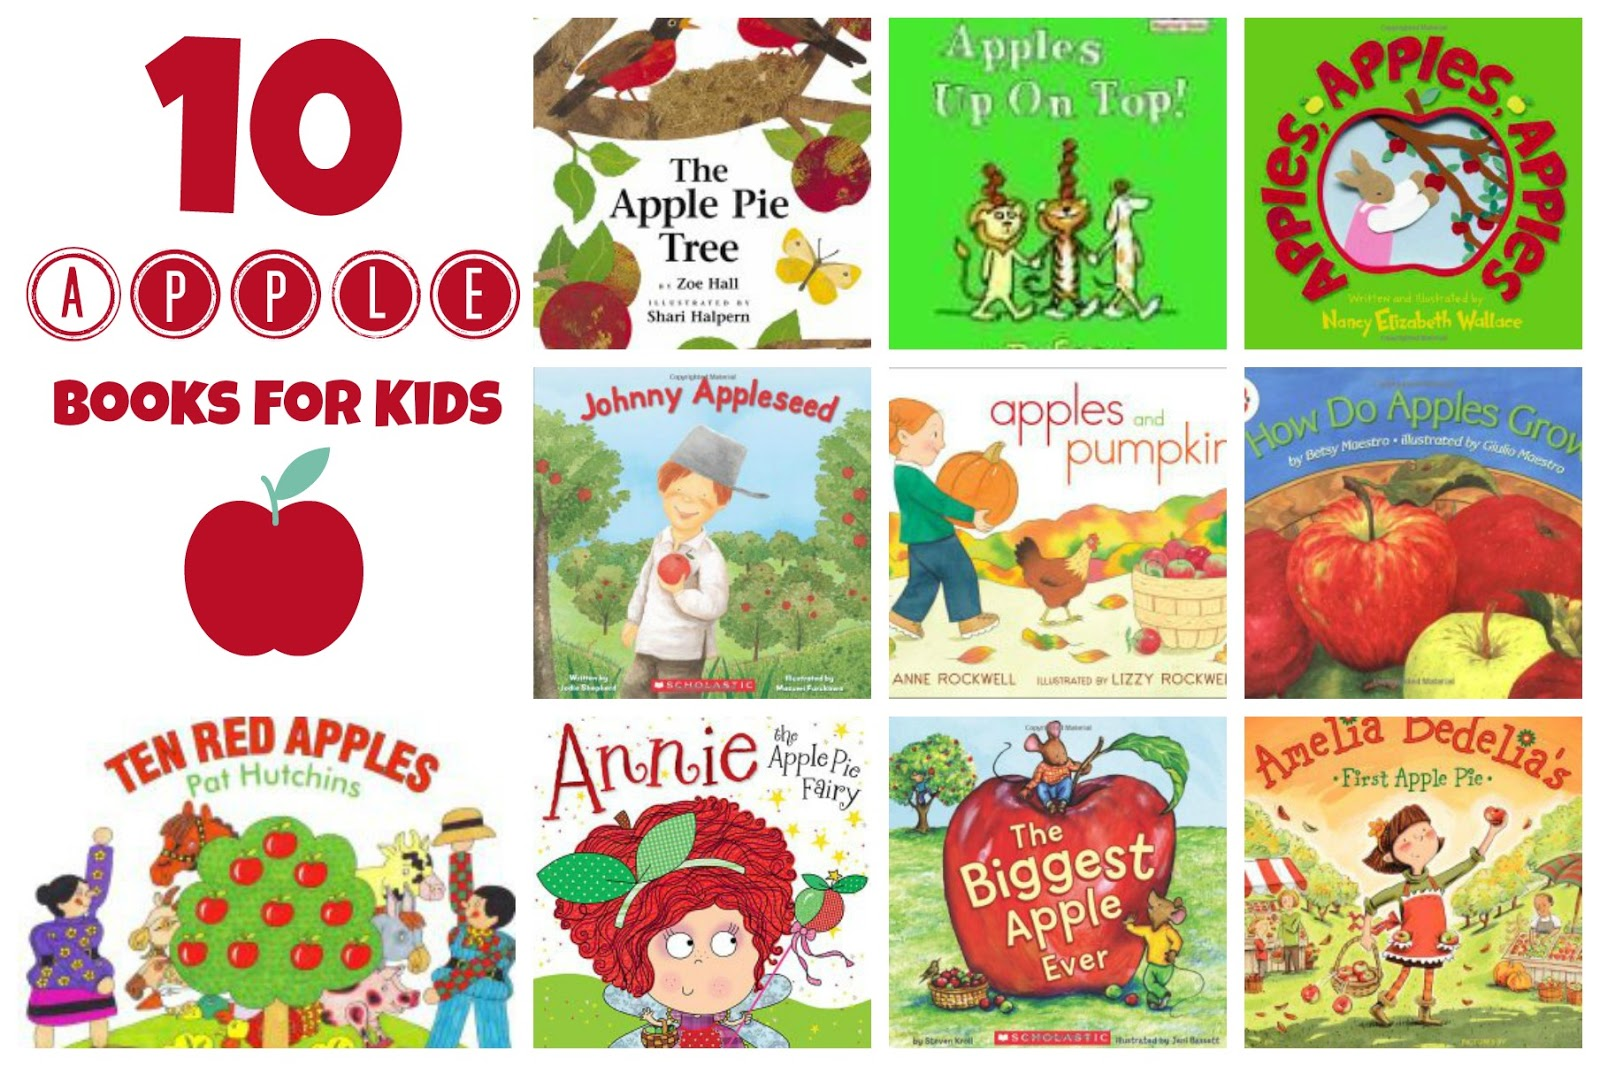 10 Apple Books for Kids